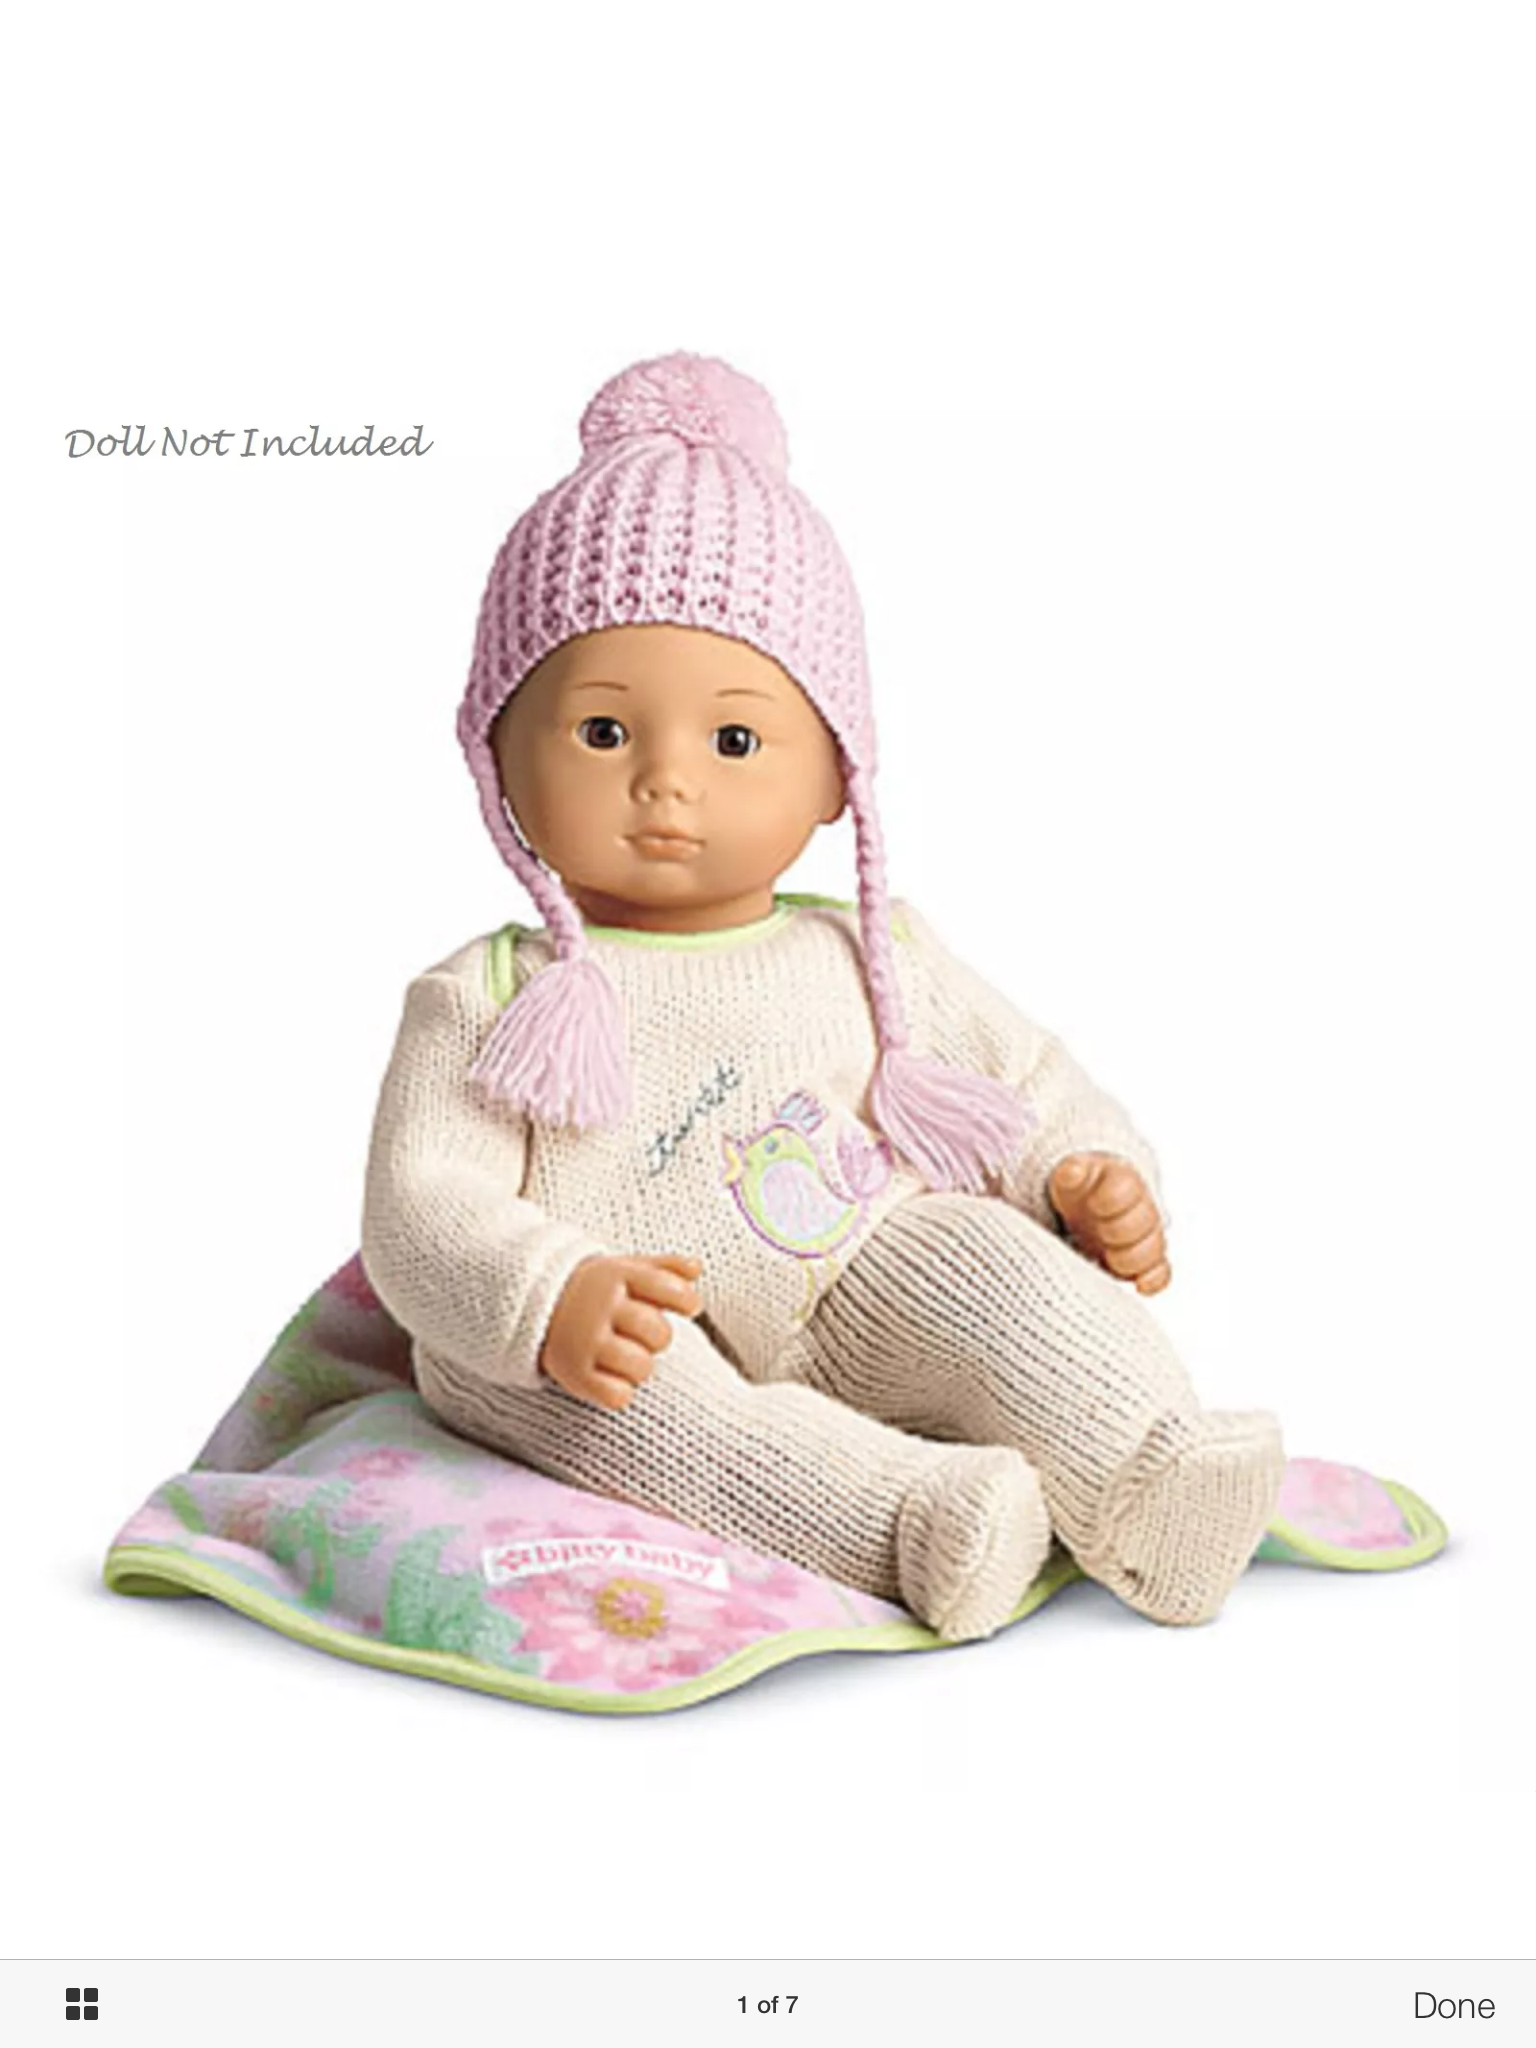 Pin by Judy Noonon on Baby Doll Clothes Pinterest